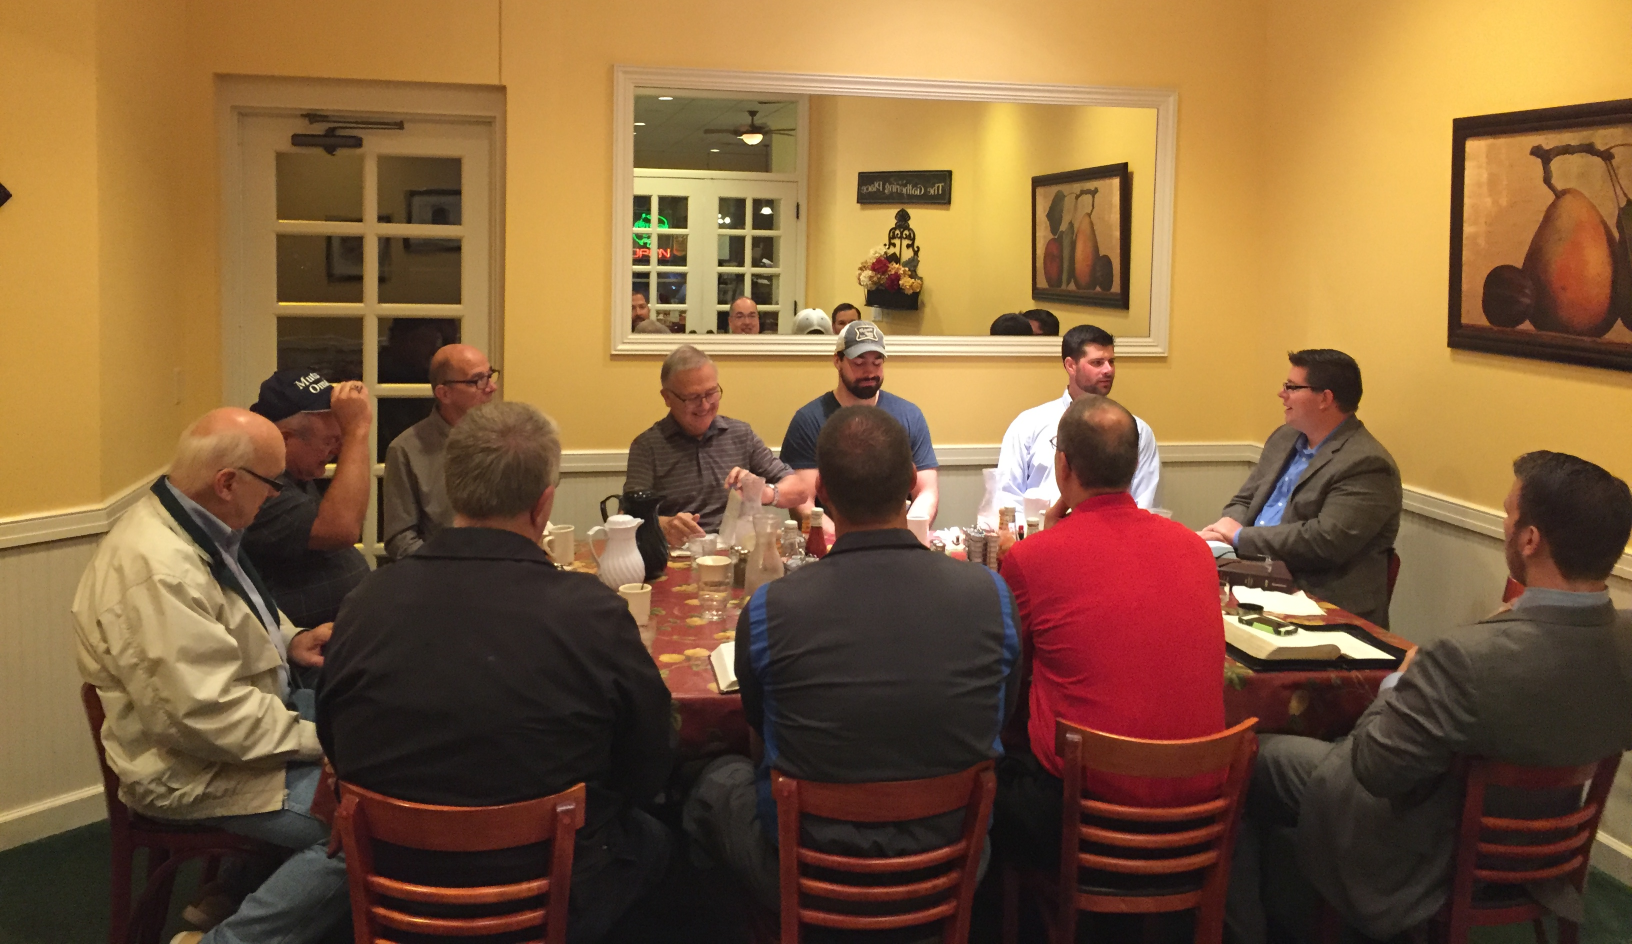 Heartland CBMC Bible Study Groups meet weekly throughout the greater Omaha area.  Business men can share and grow in their faith and understanding of God's word.